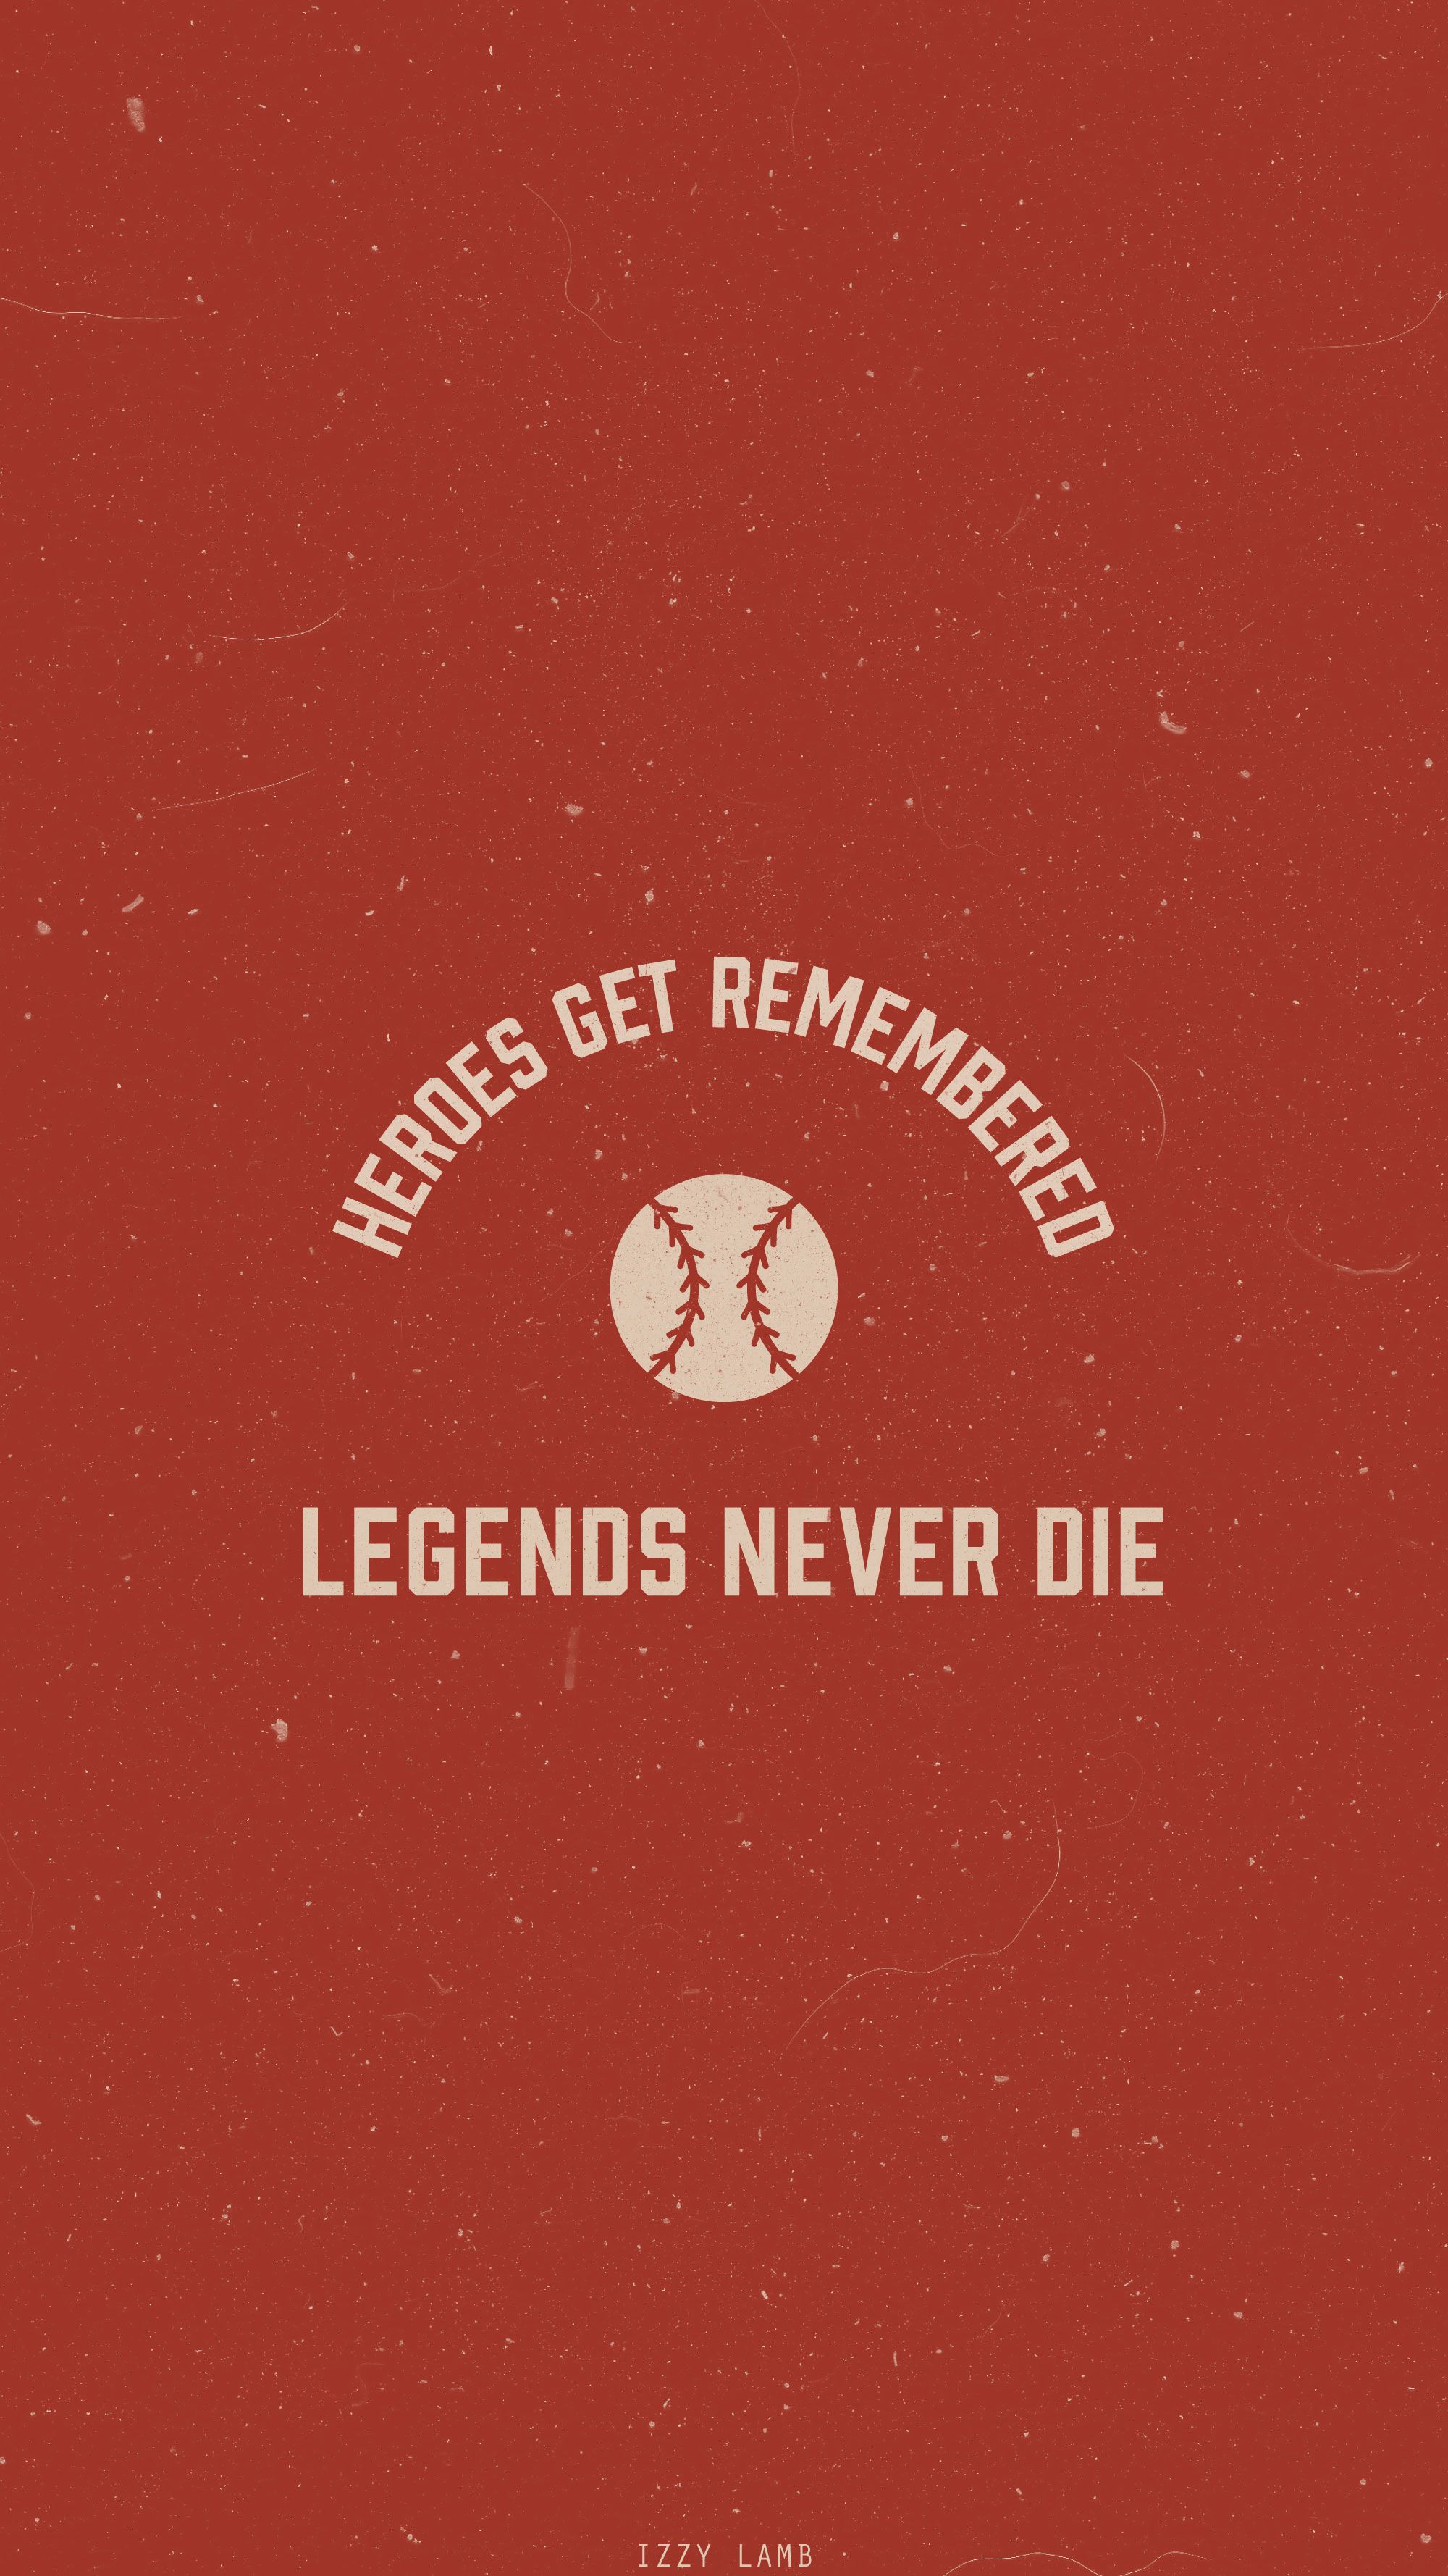 Heroes Get Remembered Legends Never Die The Sandlot The Sandlot Iphone Wallpaper Sports Iphone Wallpaper